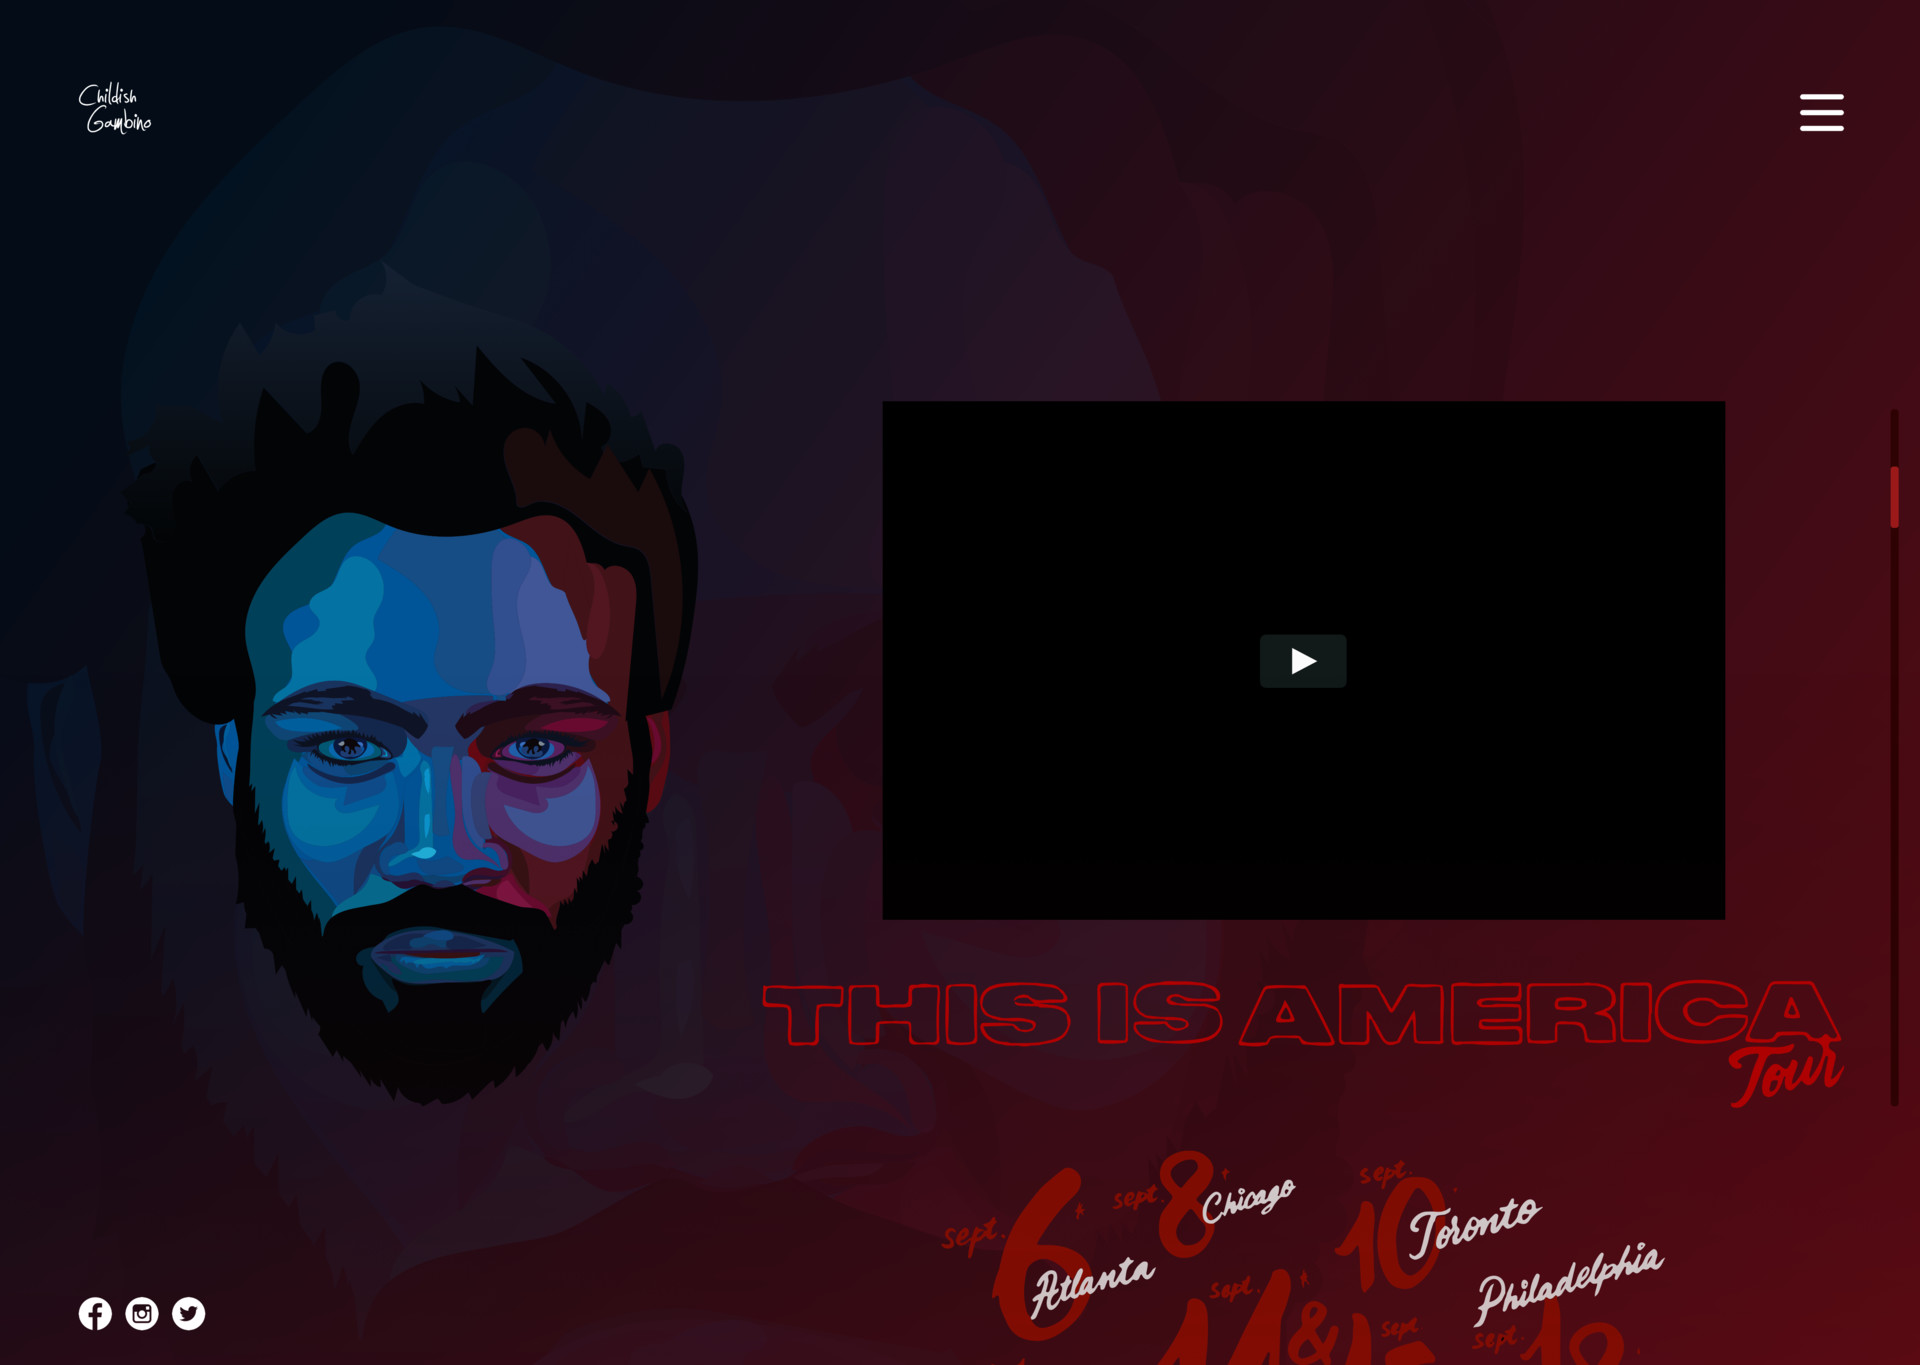 A custom design for Childish Gambino's official website.